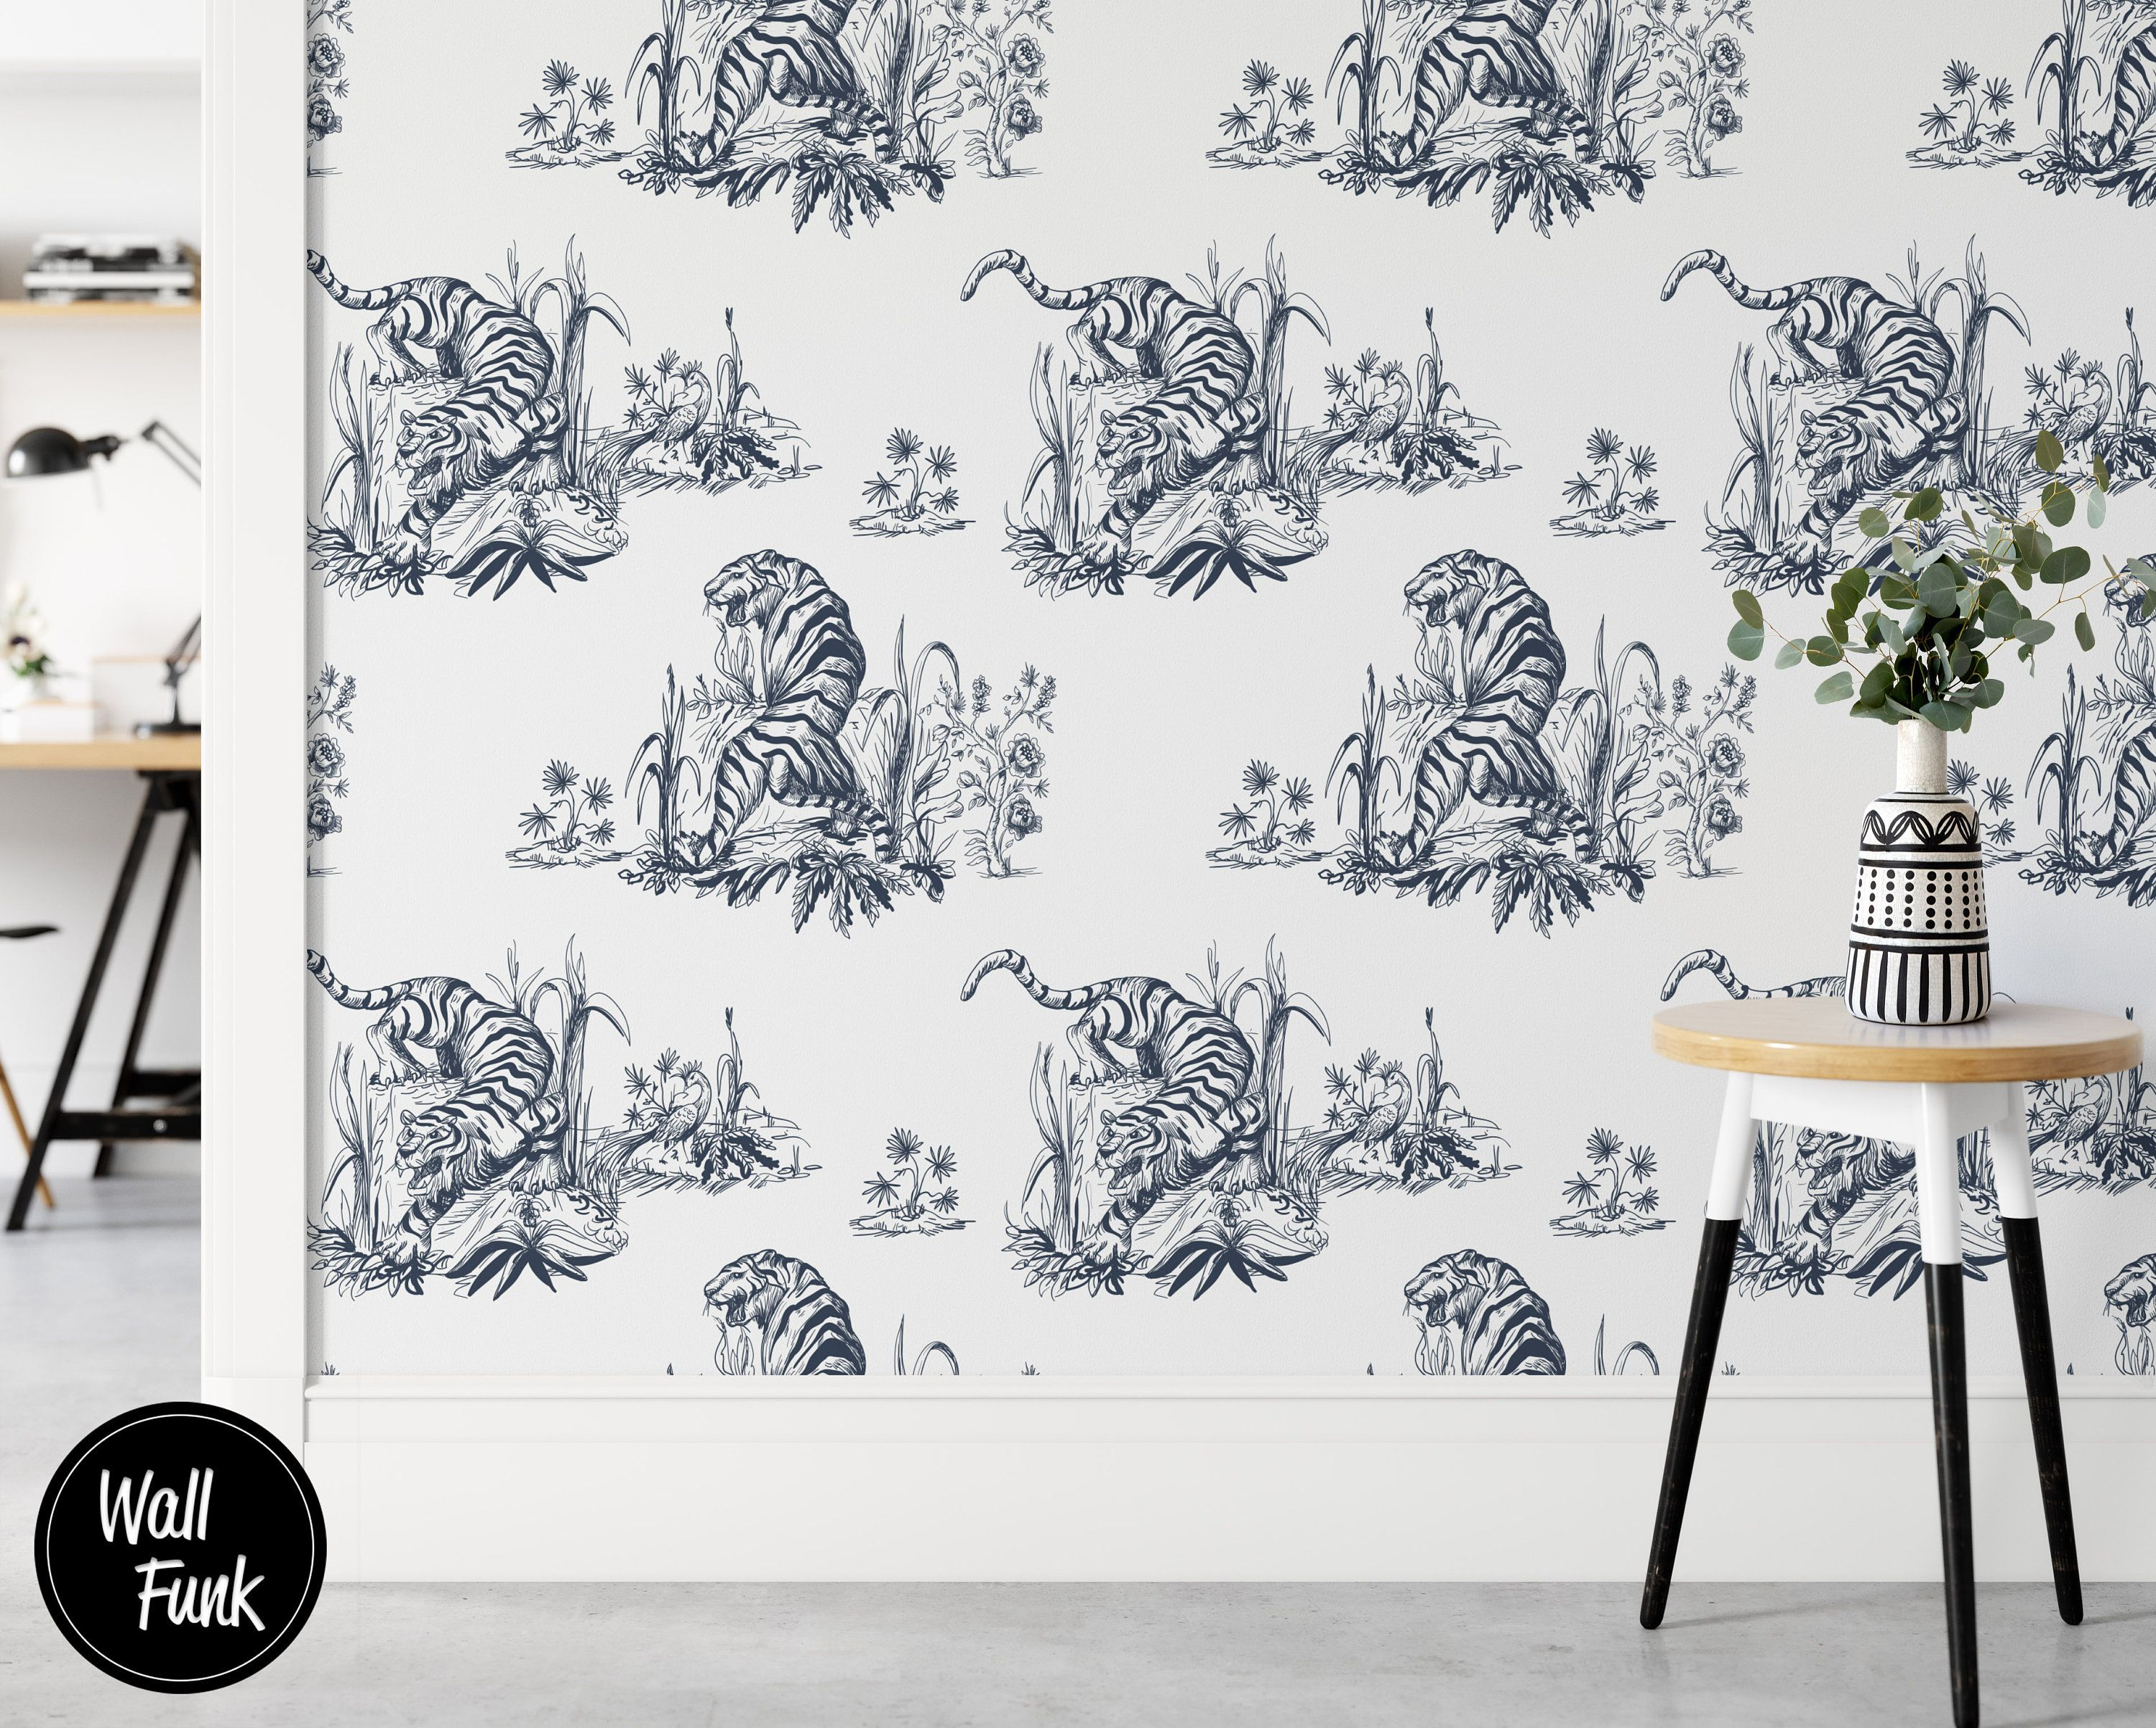 Tiger Removable Wallpaper Asian Art Wallpaper Removable Etsy Wallpaper Decor Removable Wallpaper Recycled Paper